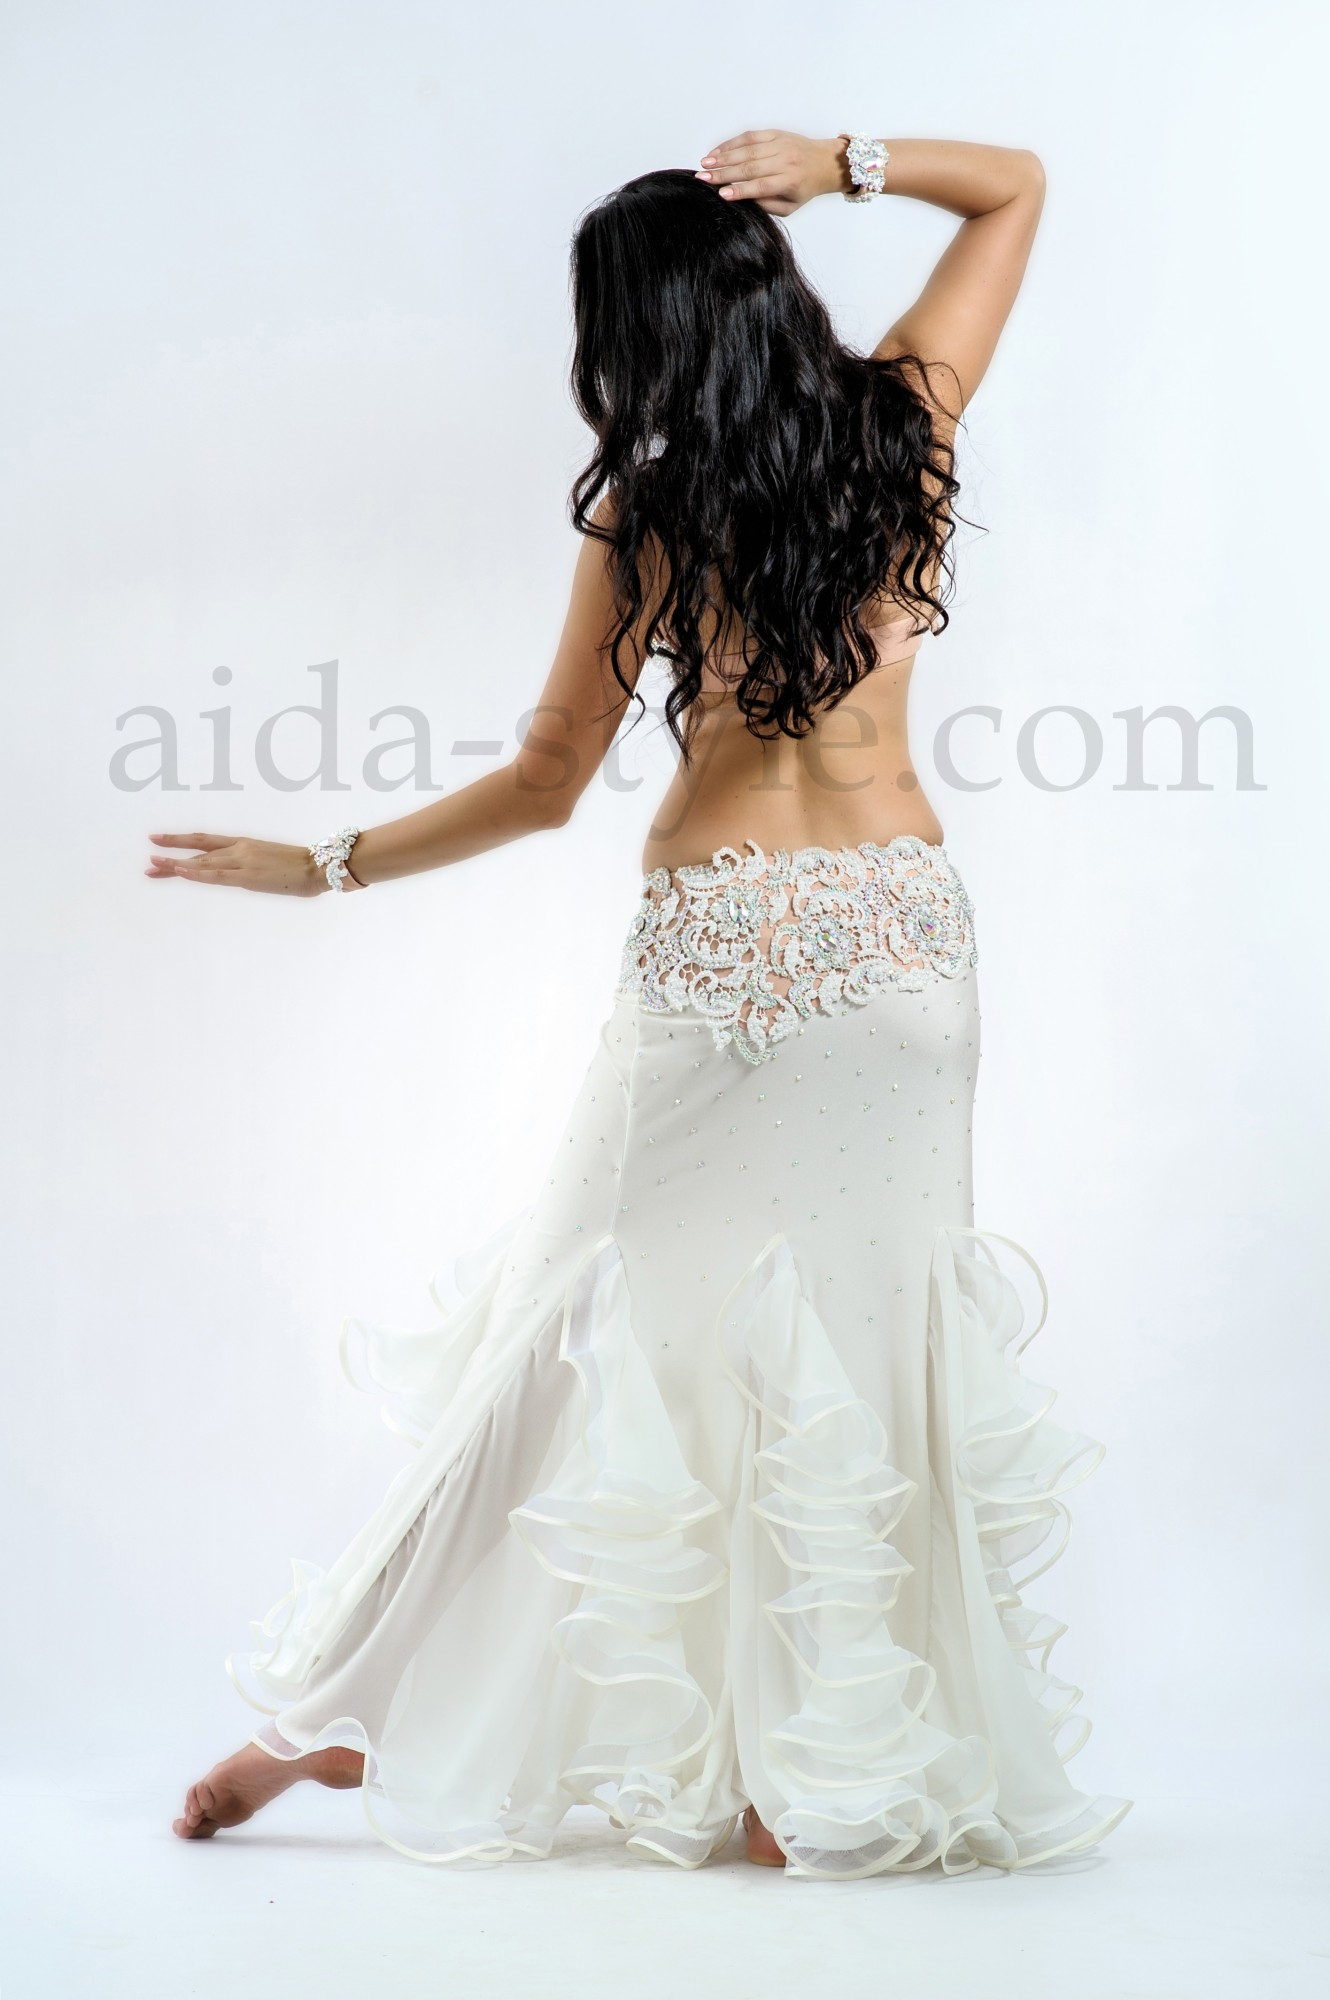 Pure white professional belly dance outfit decorated with ruffles